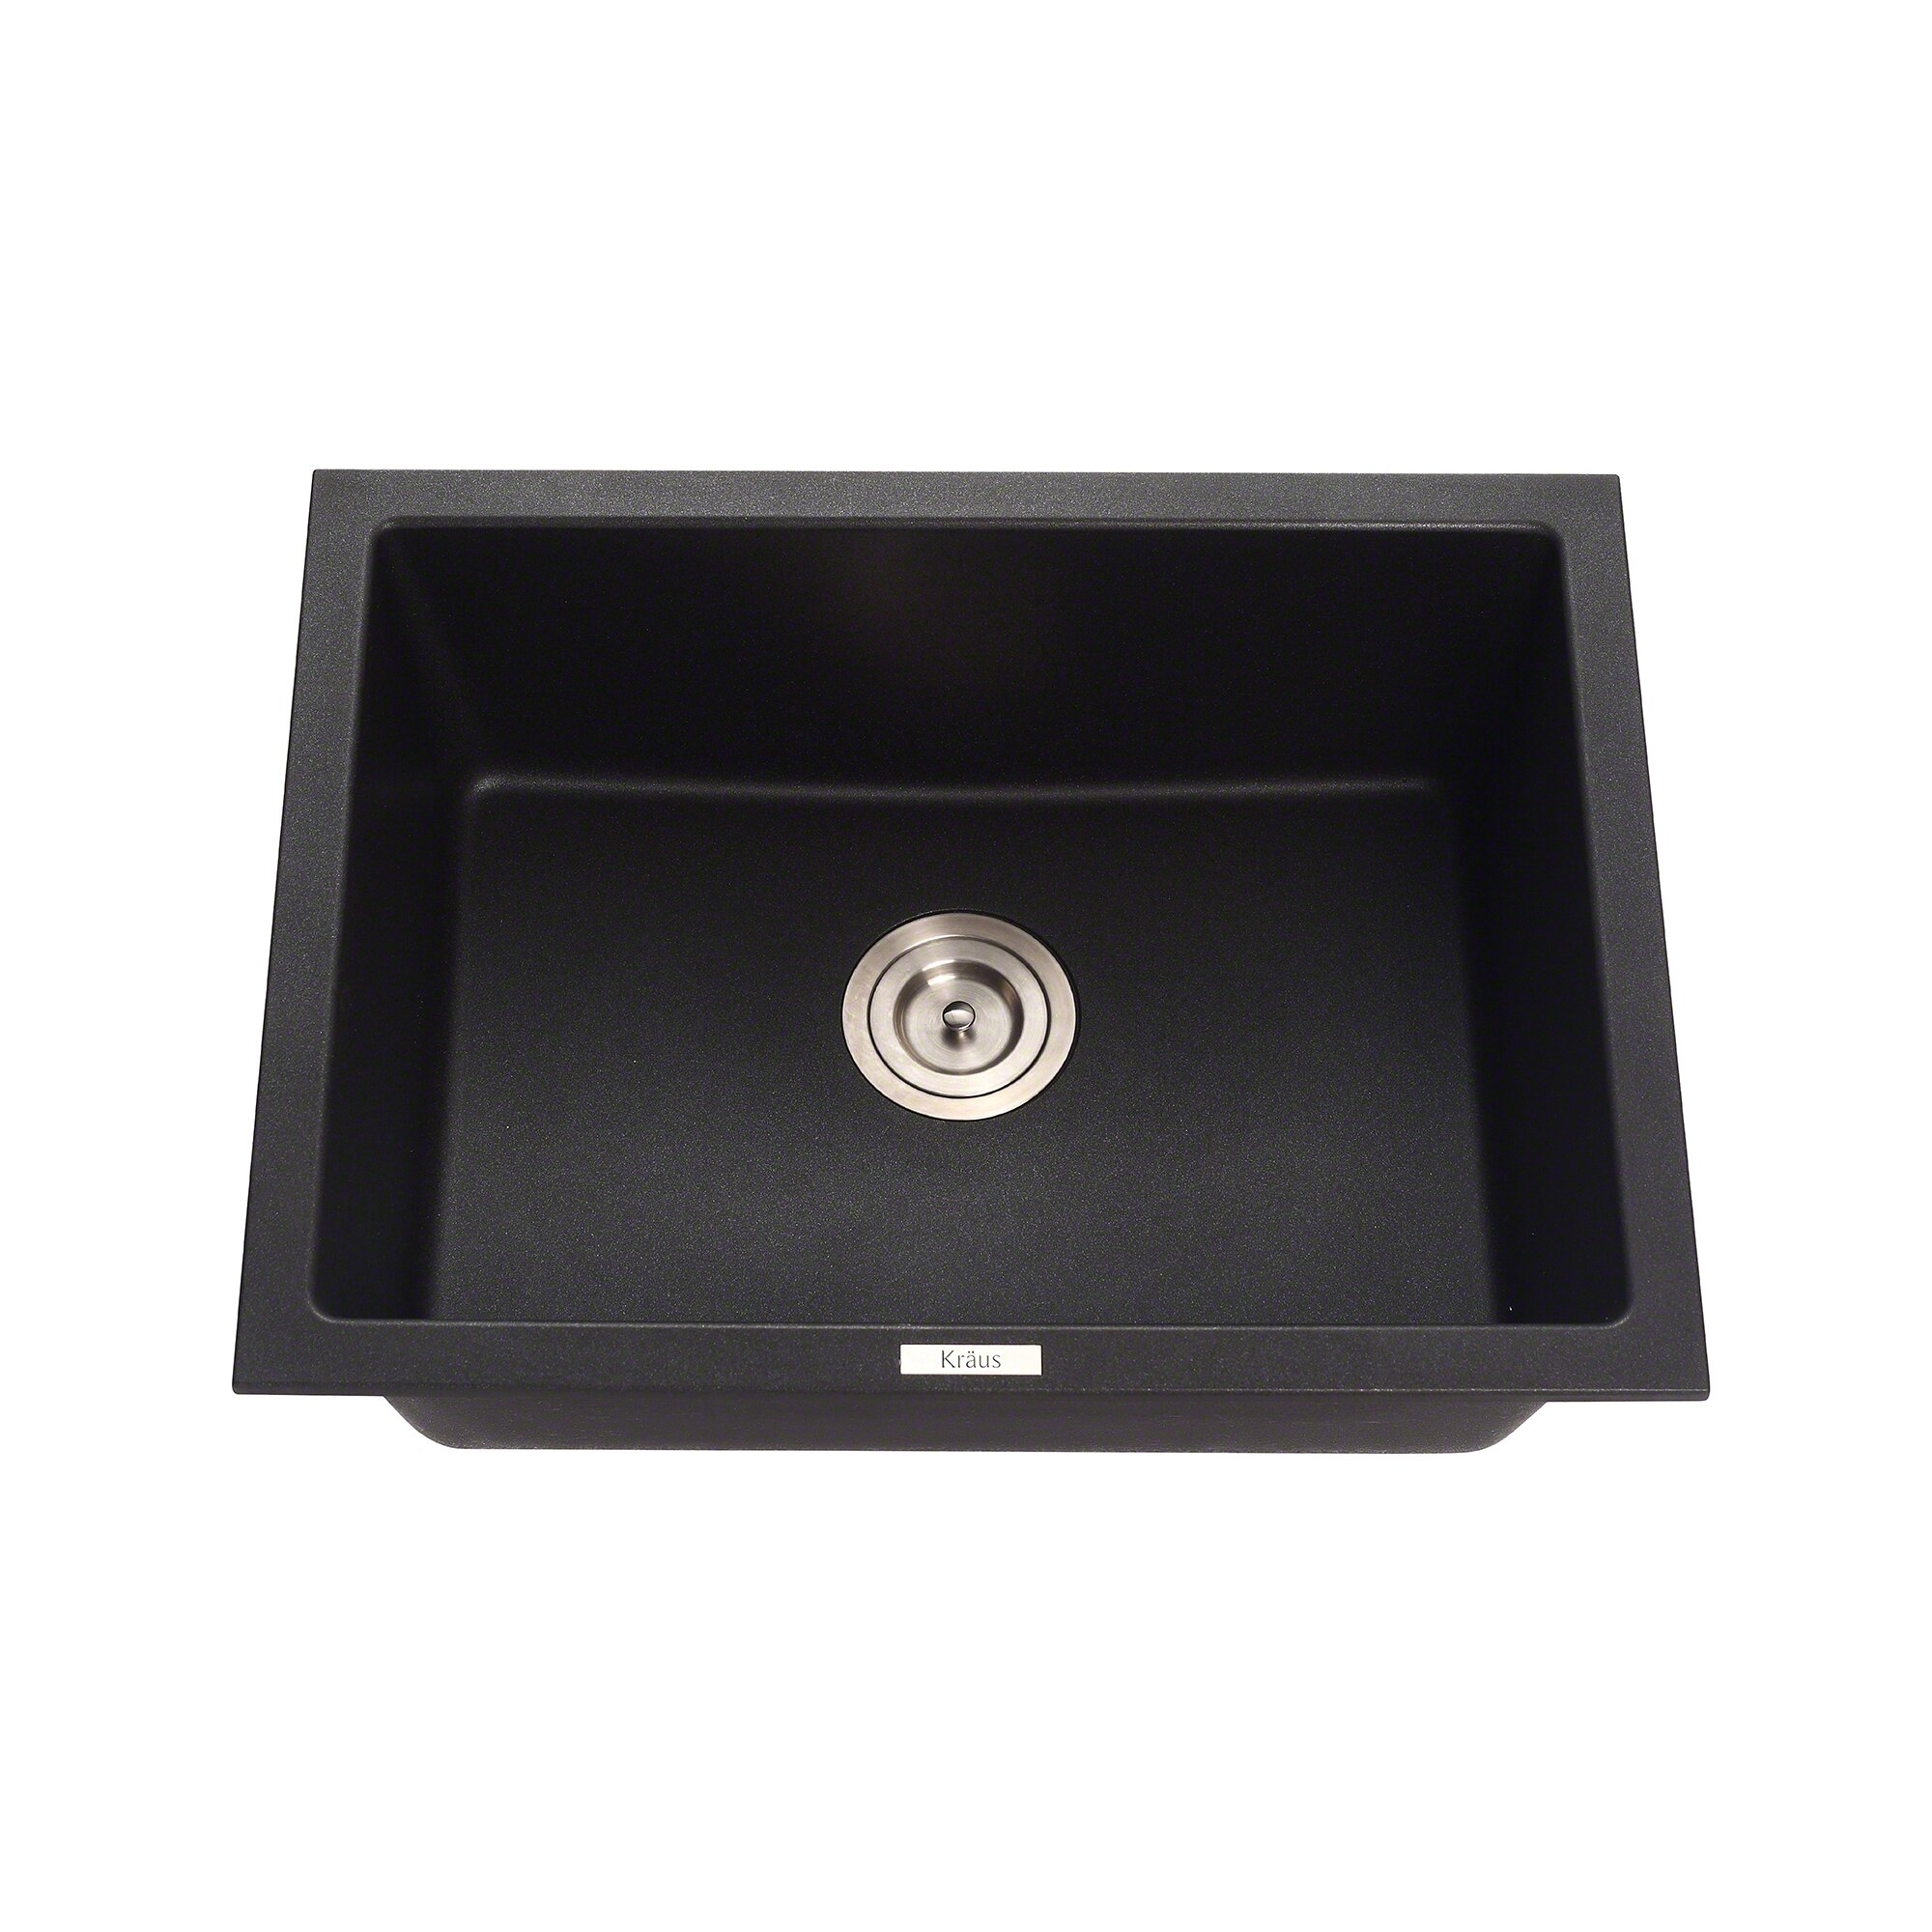 Granite Undermount Kitchen Sink Kraus Granite 24 X 18 Undermount Kitchen Sink Reviews Wayfair